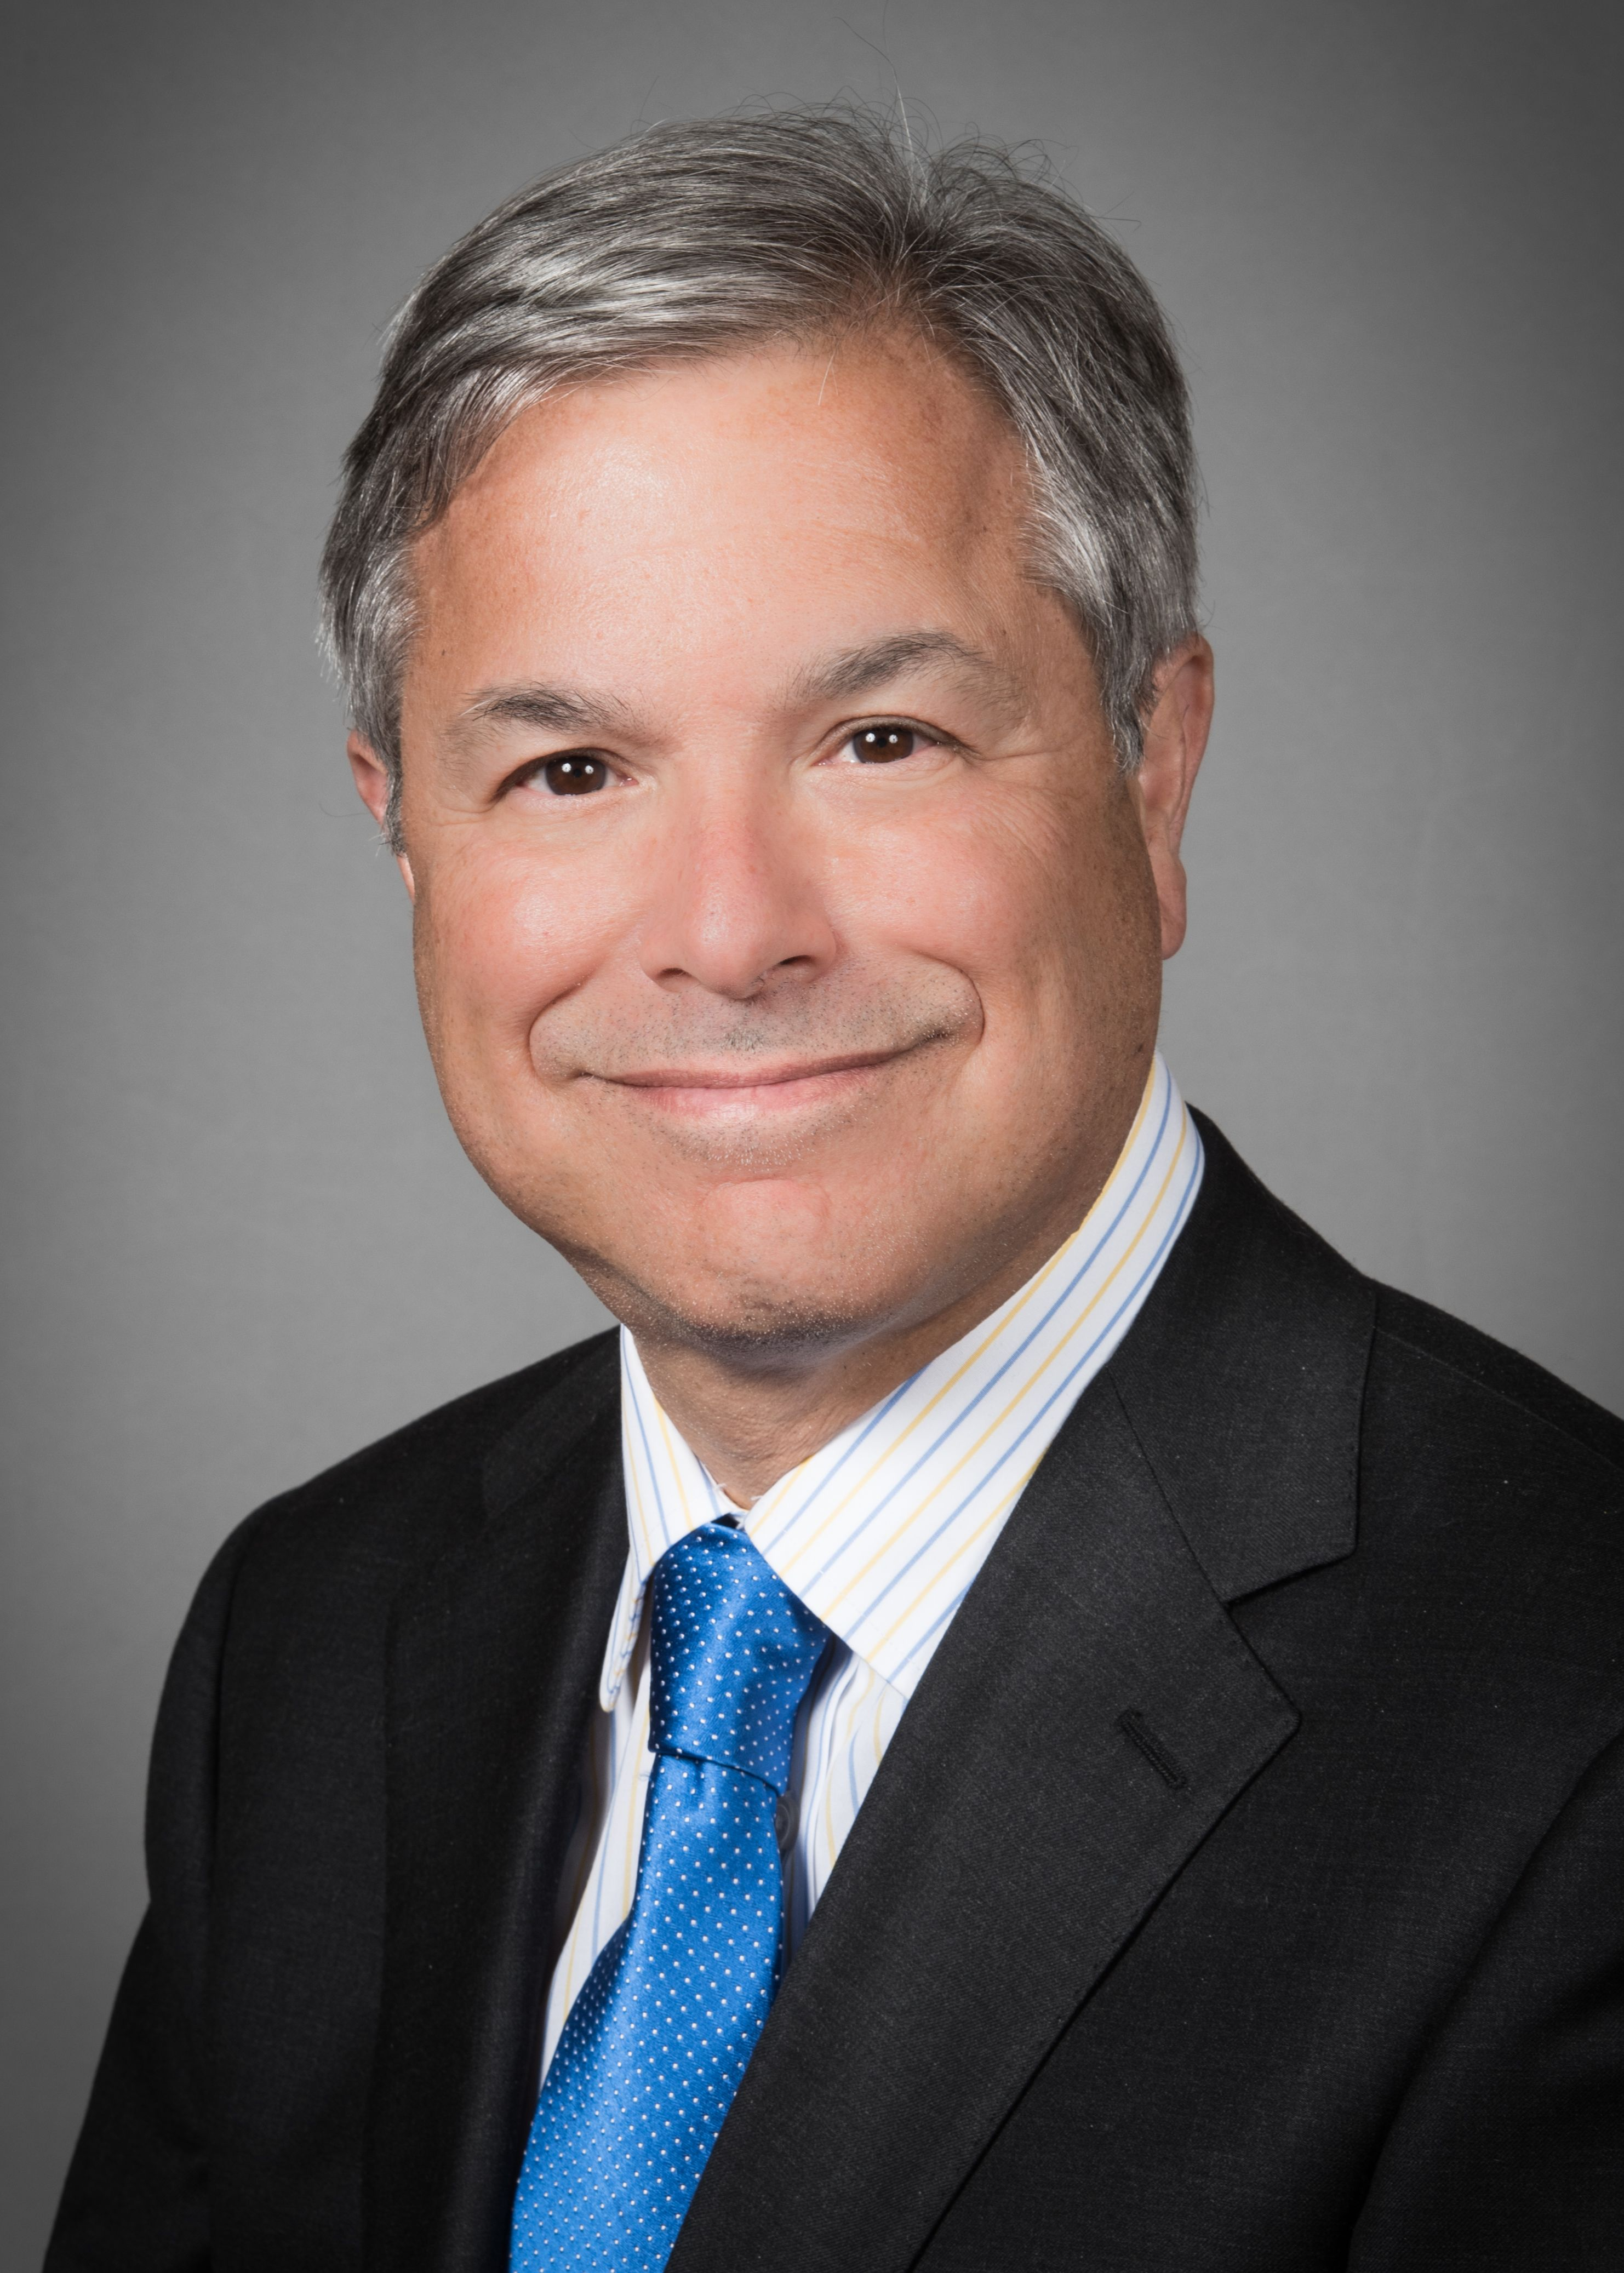 Michael Grosso, MD, wearing a dark suit with a blue tie